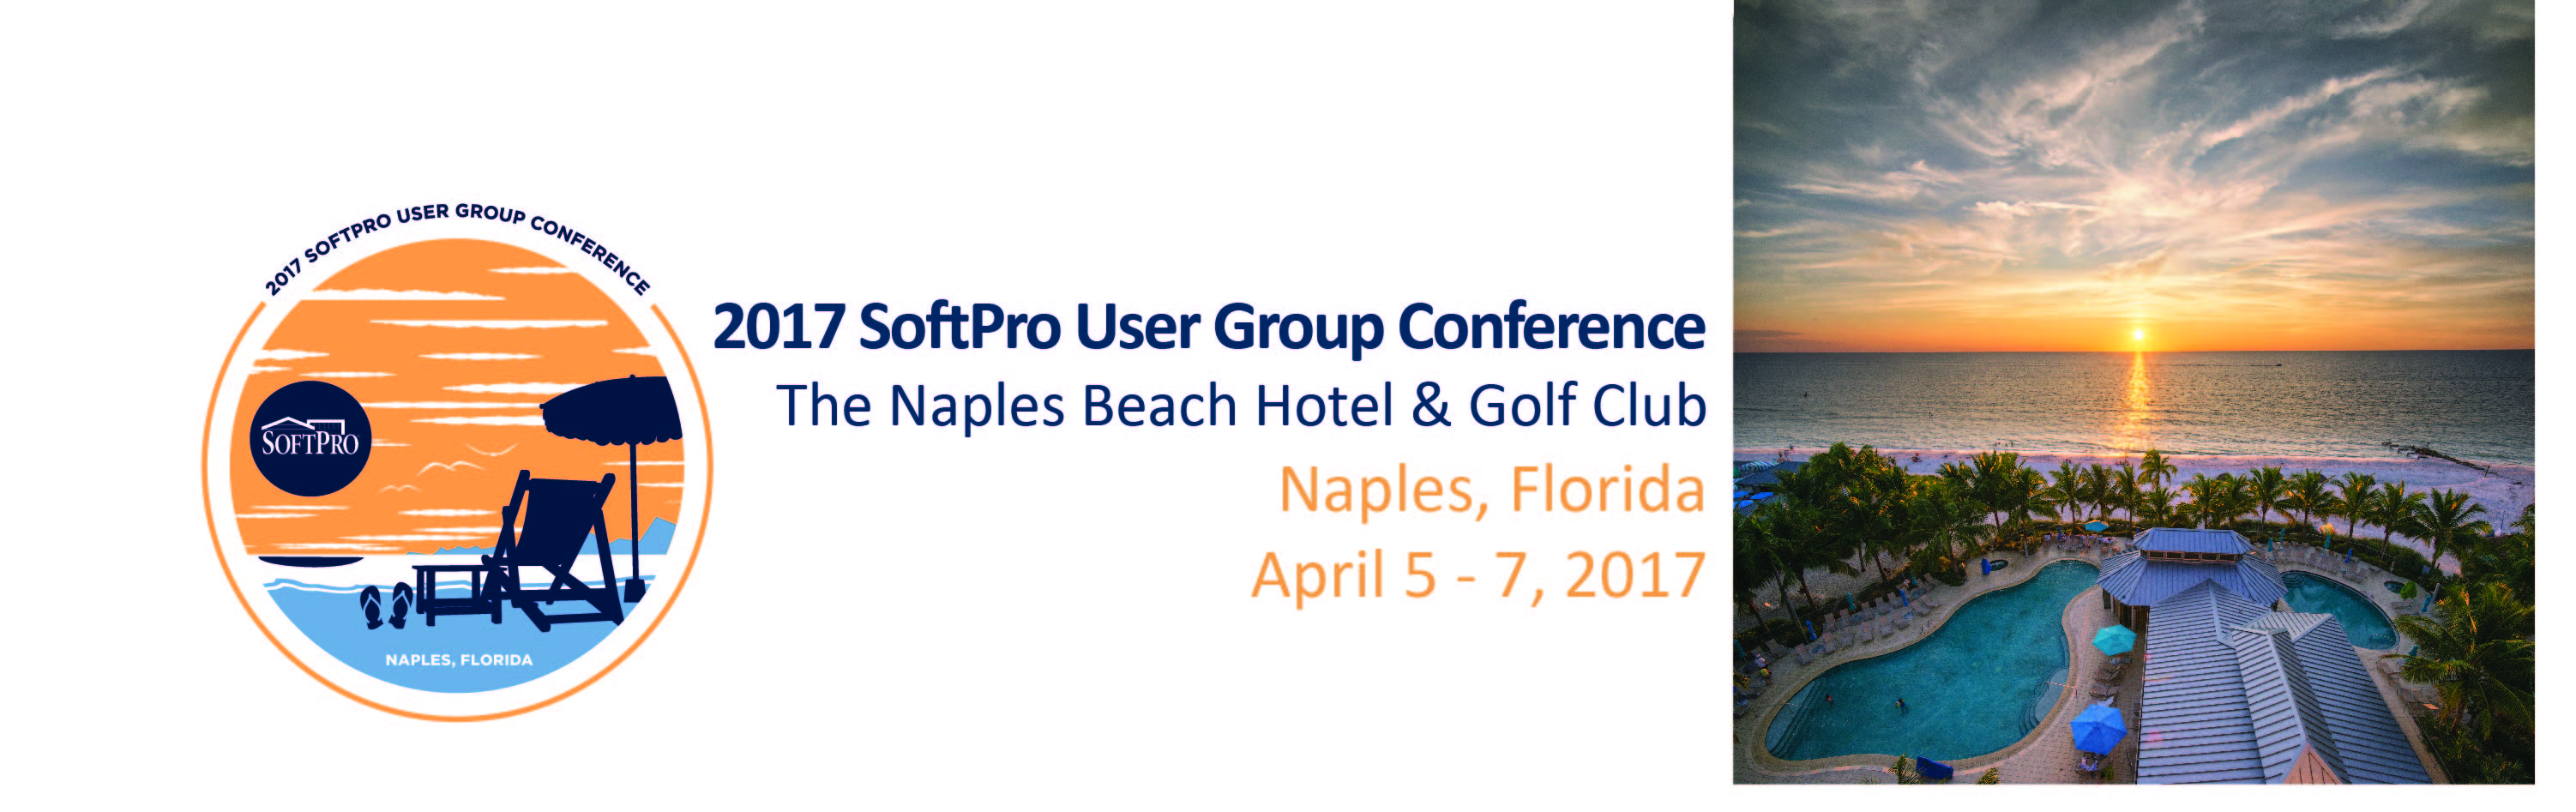 SOFTPRO 2017 USER GROUP CONFERENCE